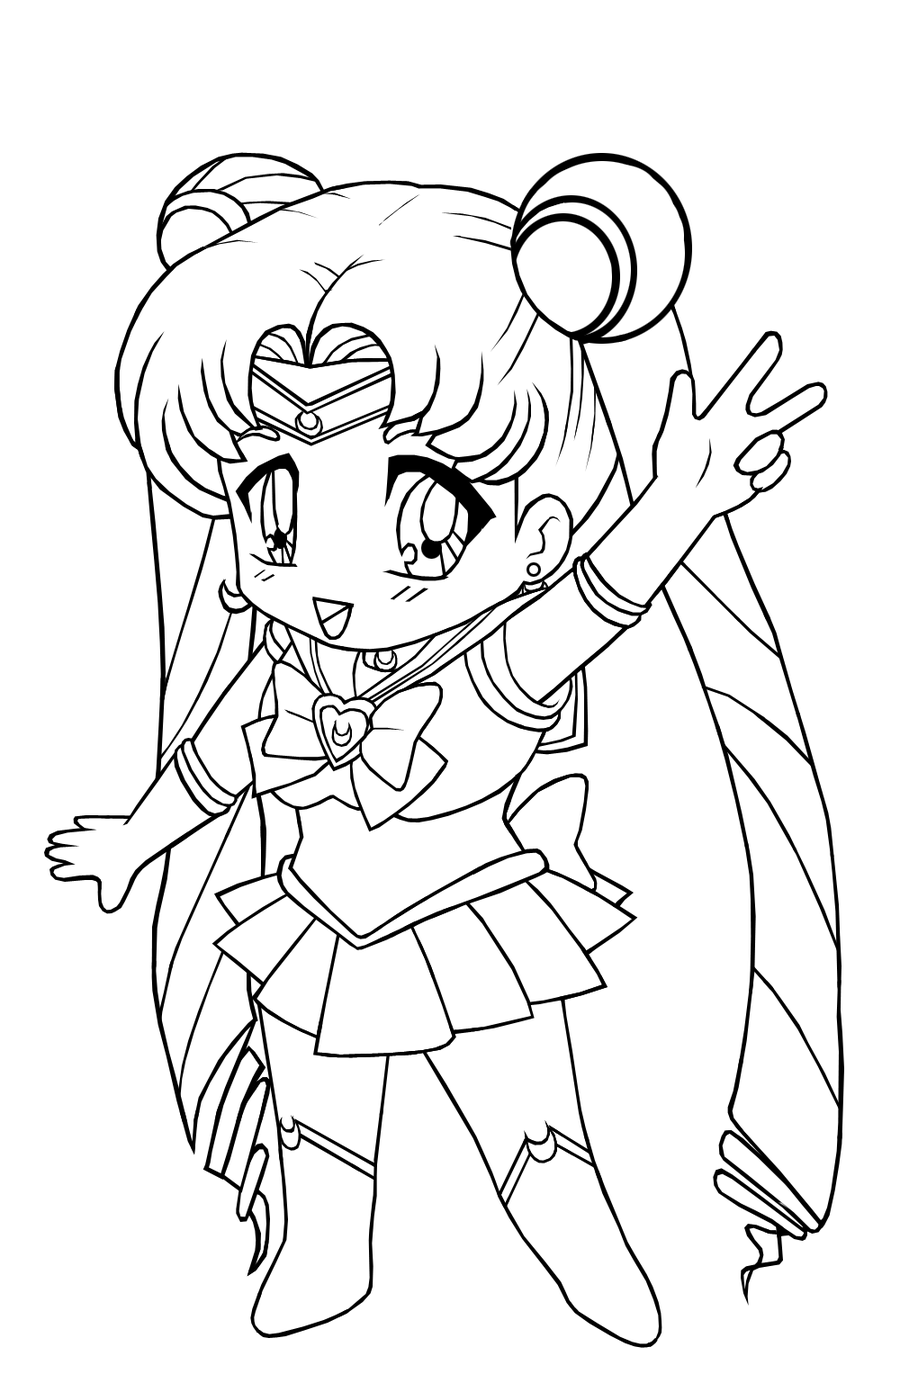 anime coloring anime coloring pages getcoloringpagescom anime coloring